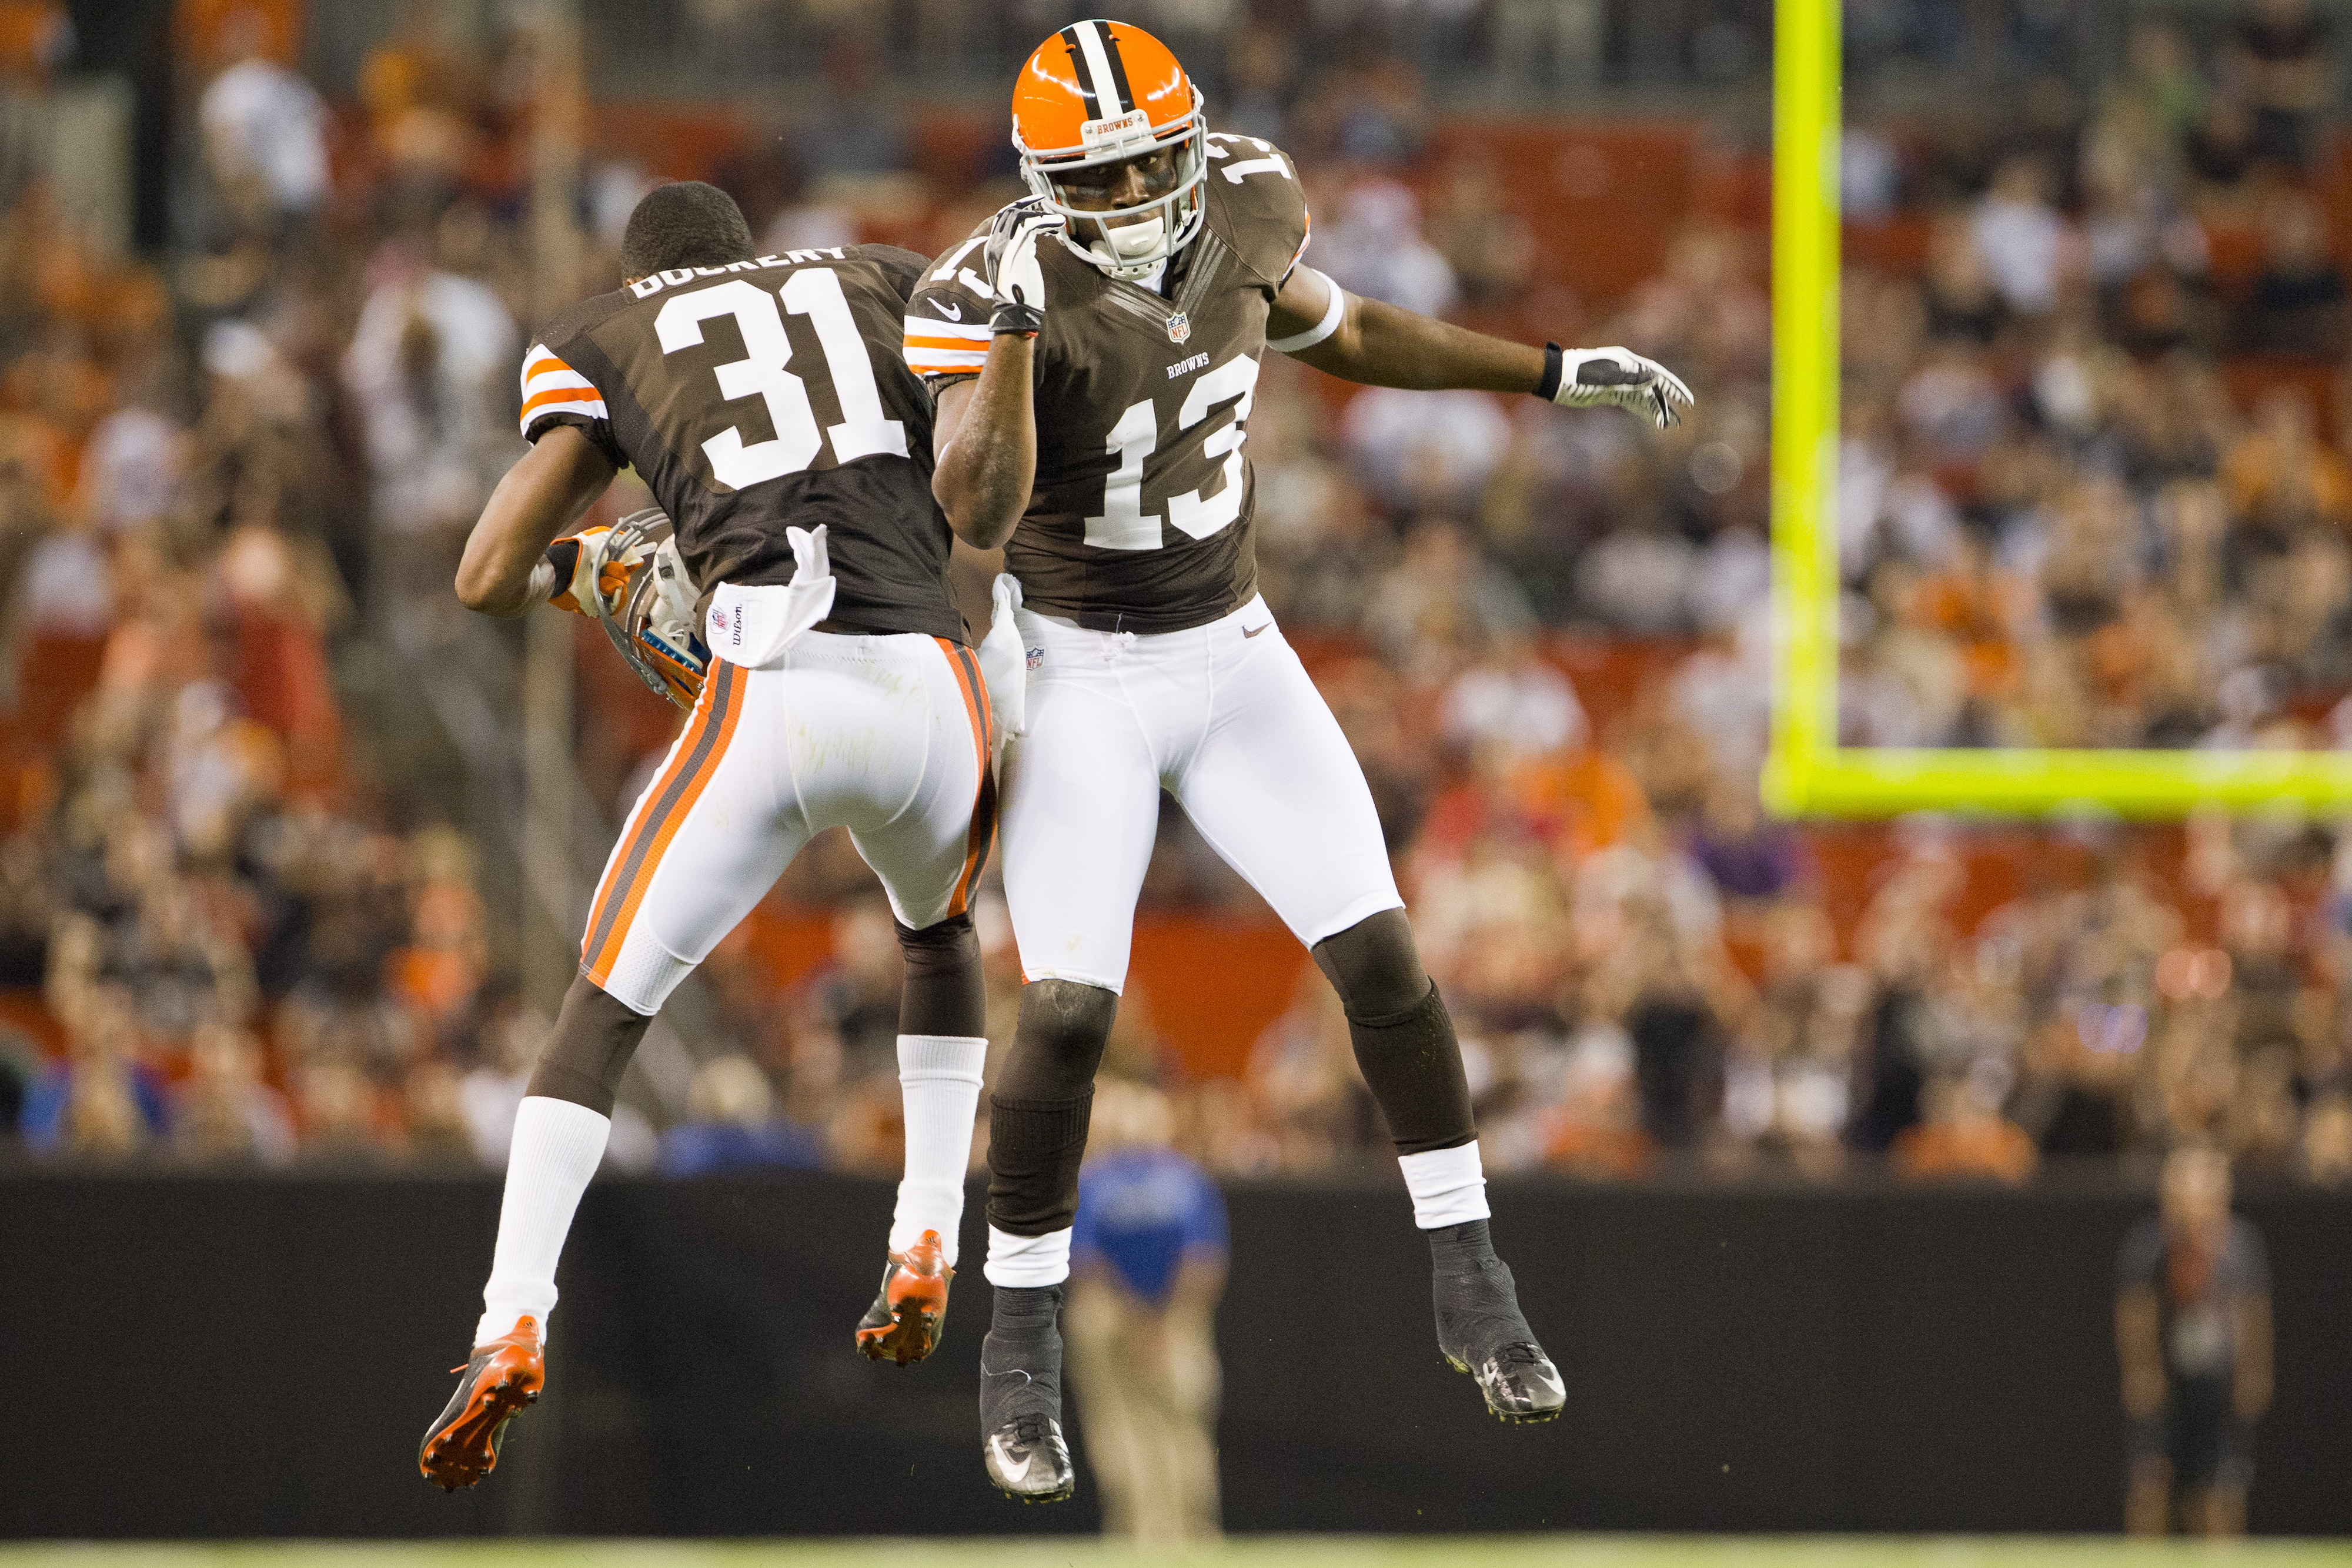 CB James Dockery (#31) and WR Rod Windsor (#13) celebrate after a Cleveland Browns touchdown in the team's final preseason game against the Bears. With both guys being bubble players, did they do enough to warrant a spot on the final roster?